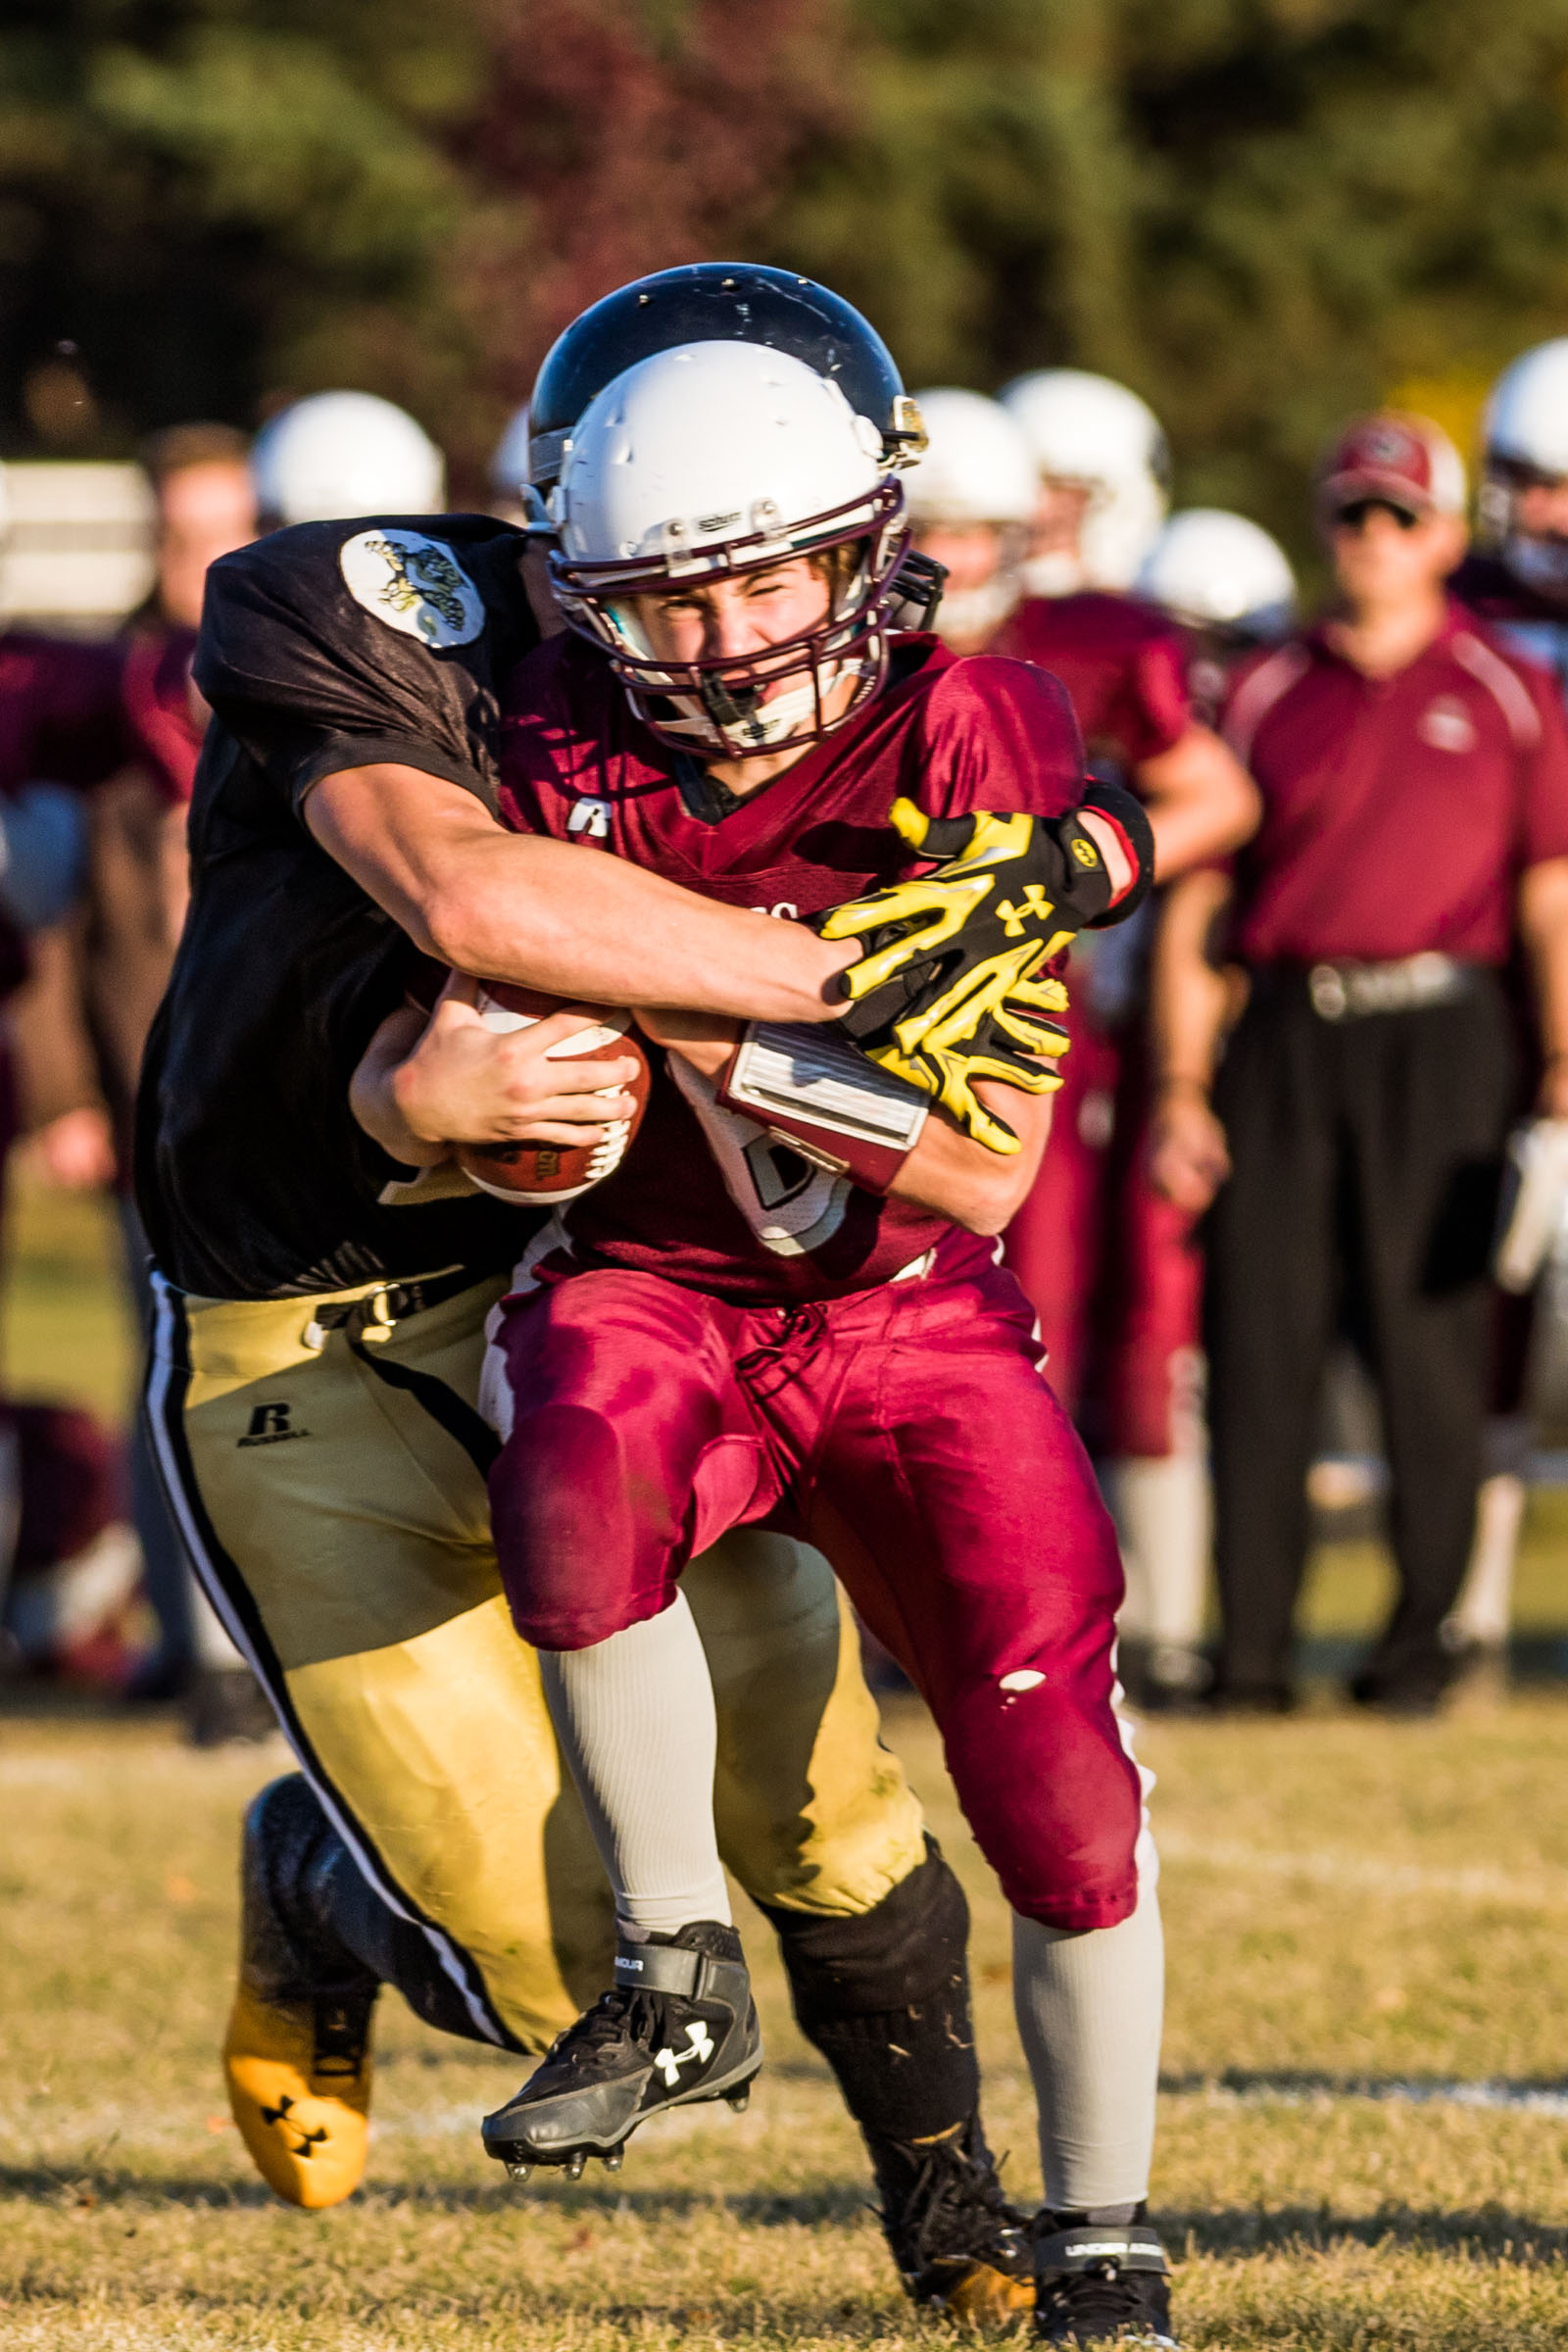 0314_macklinsabres_haguepanthers_football_September 30, 2016.jpg